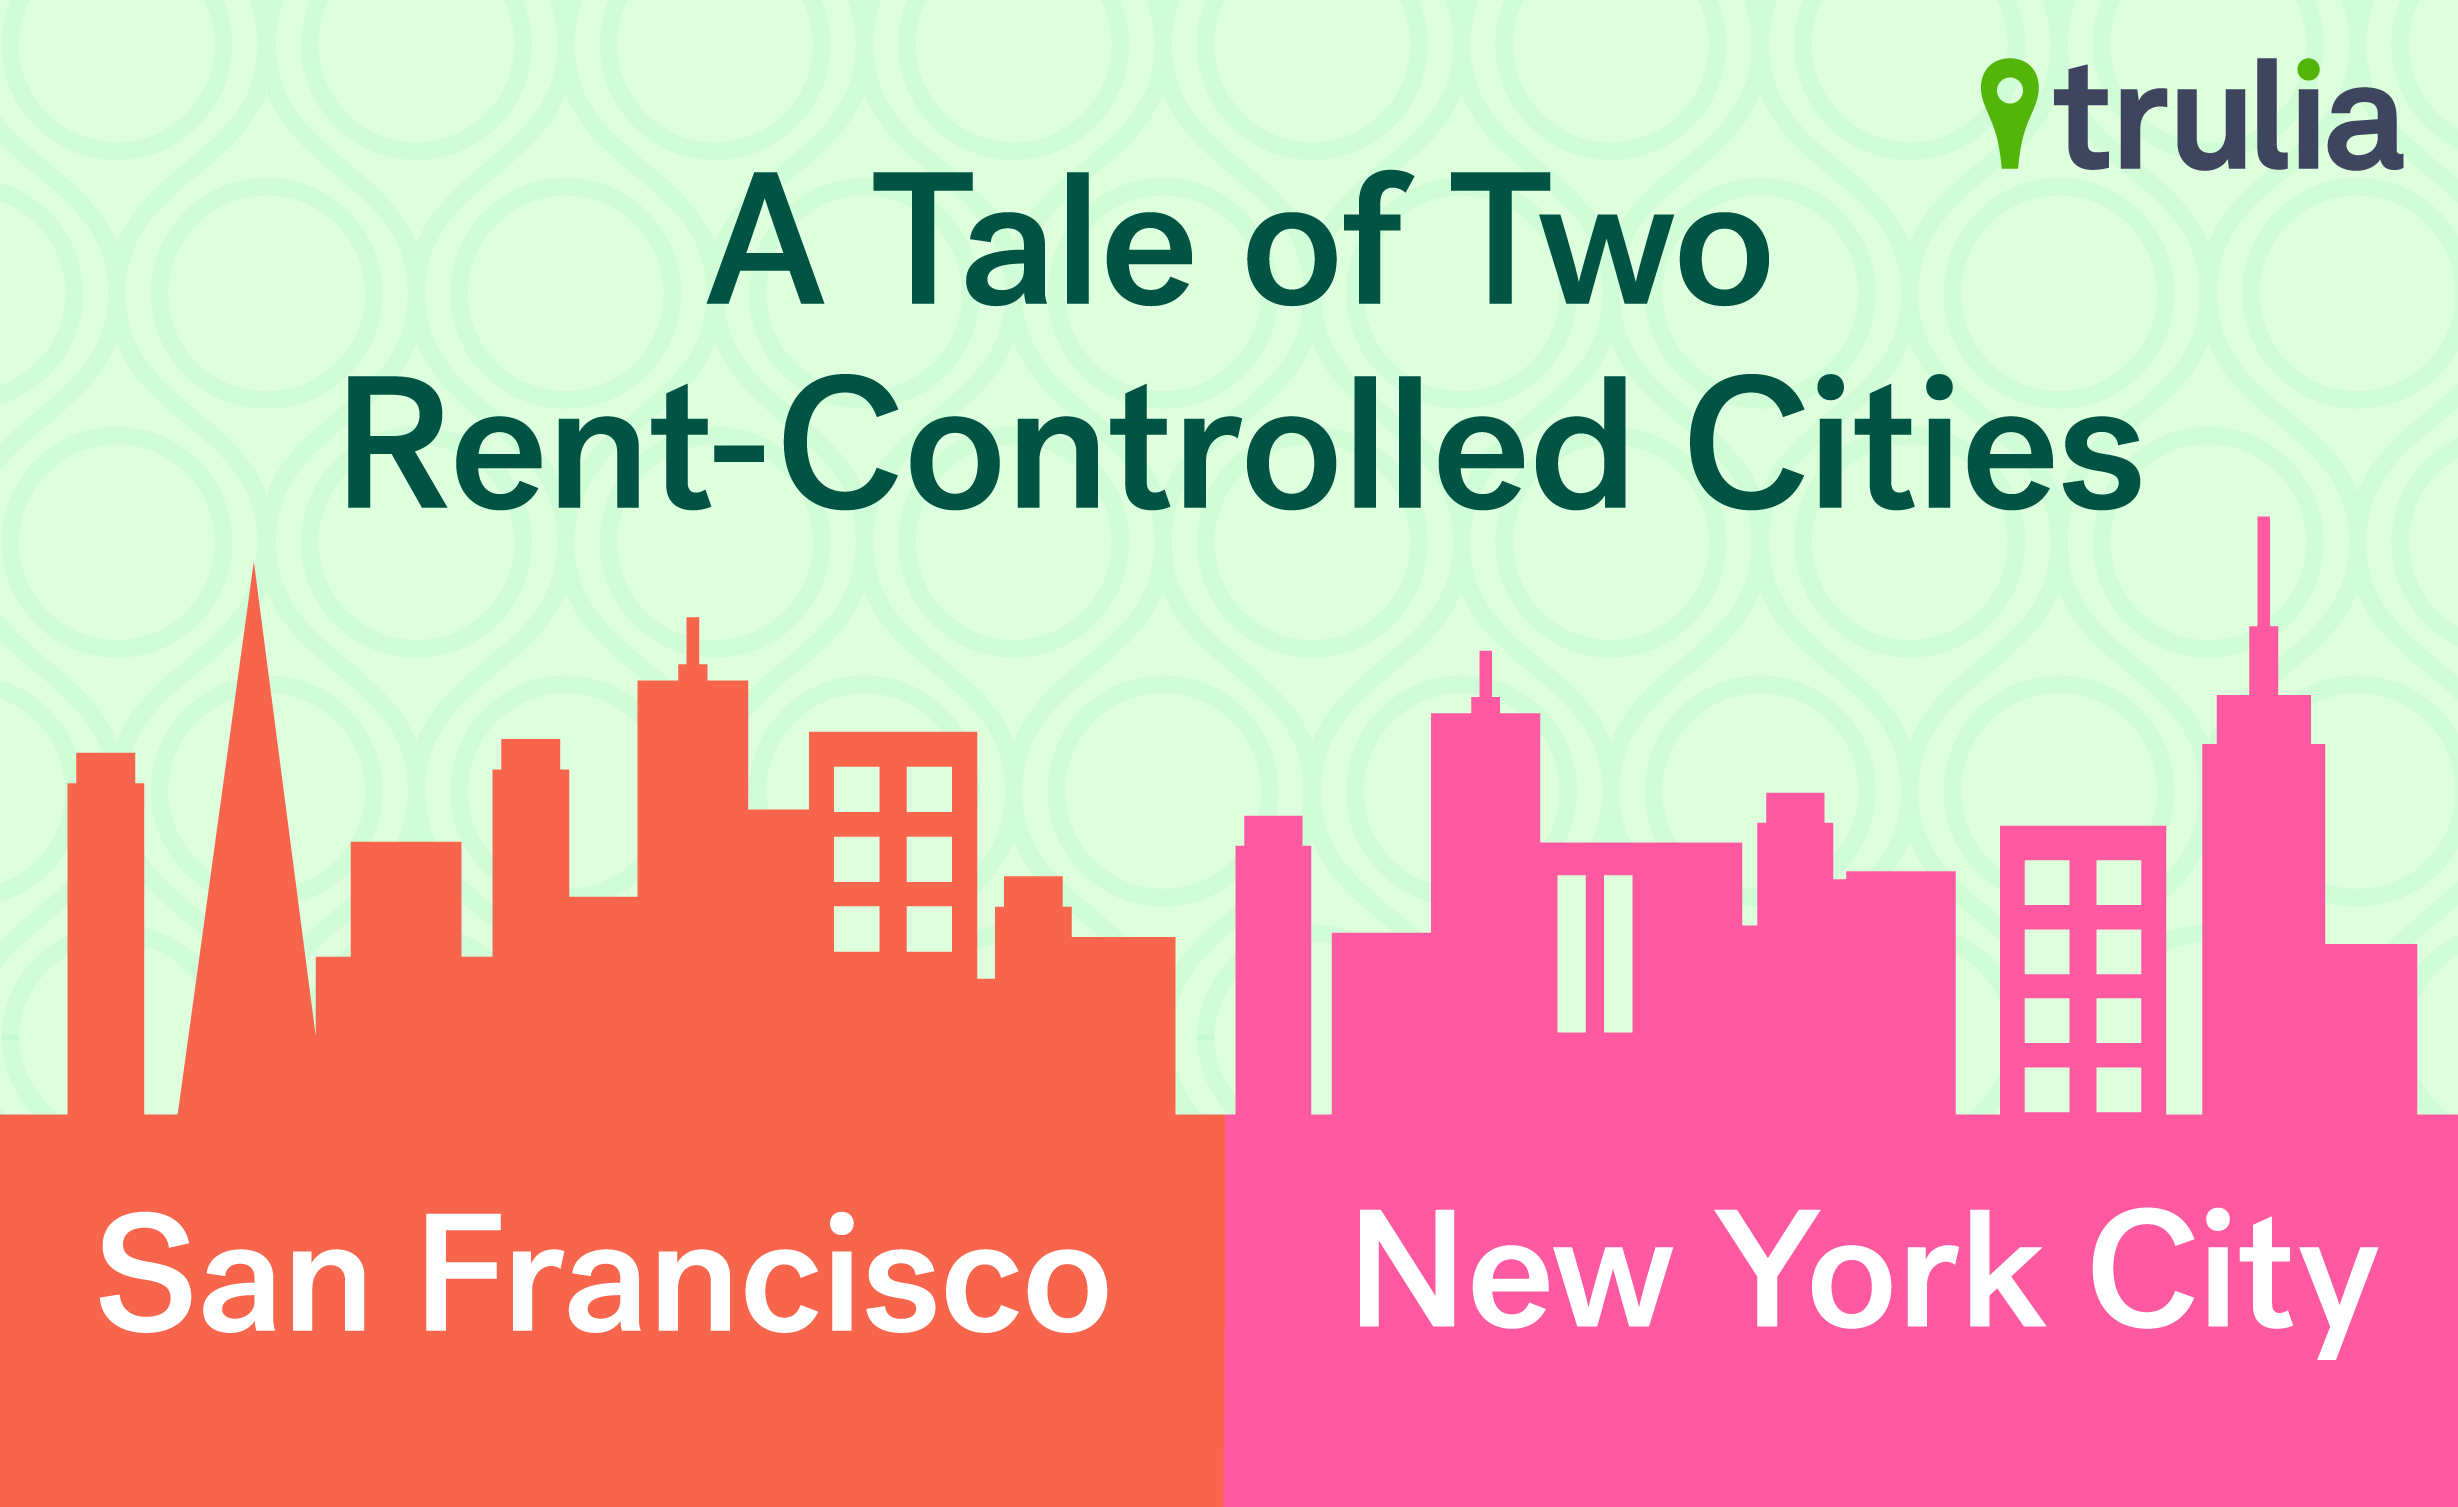 A tale of two rent controlled cities new york city and for Rent new york city